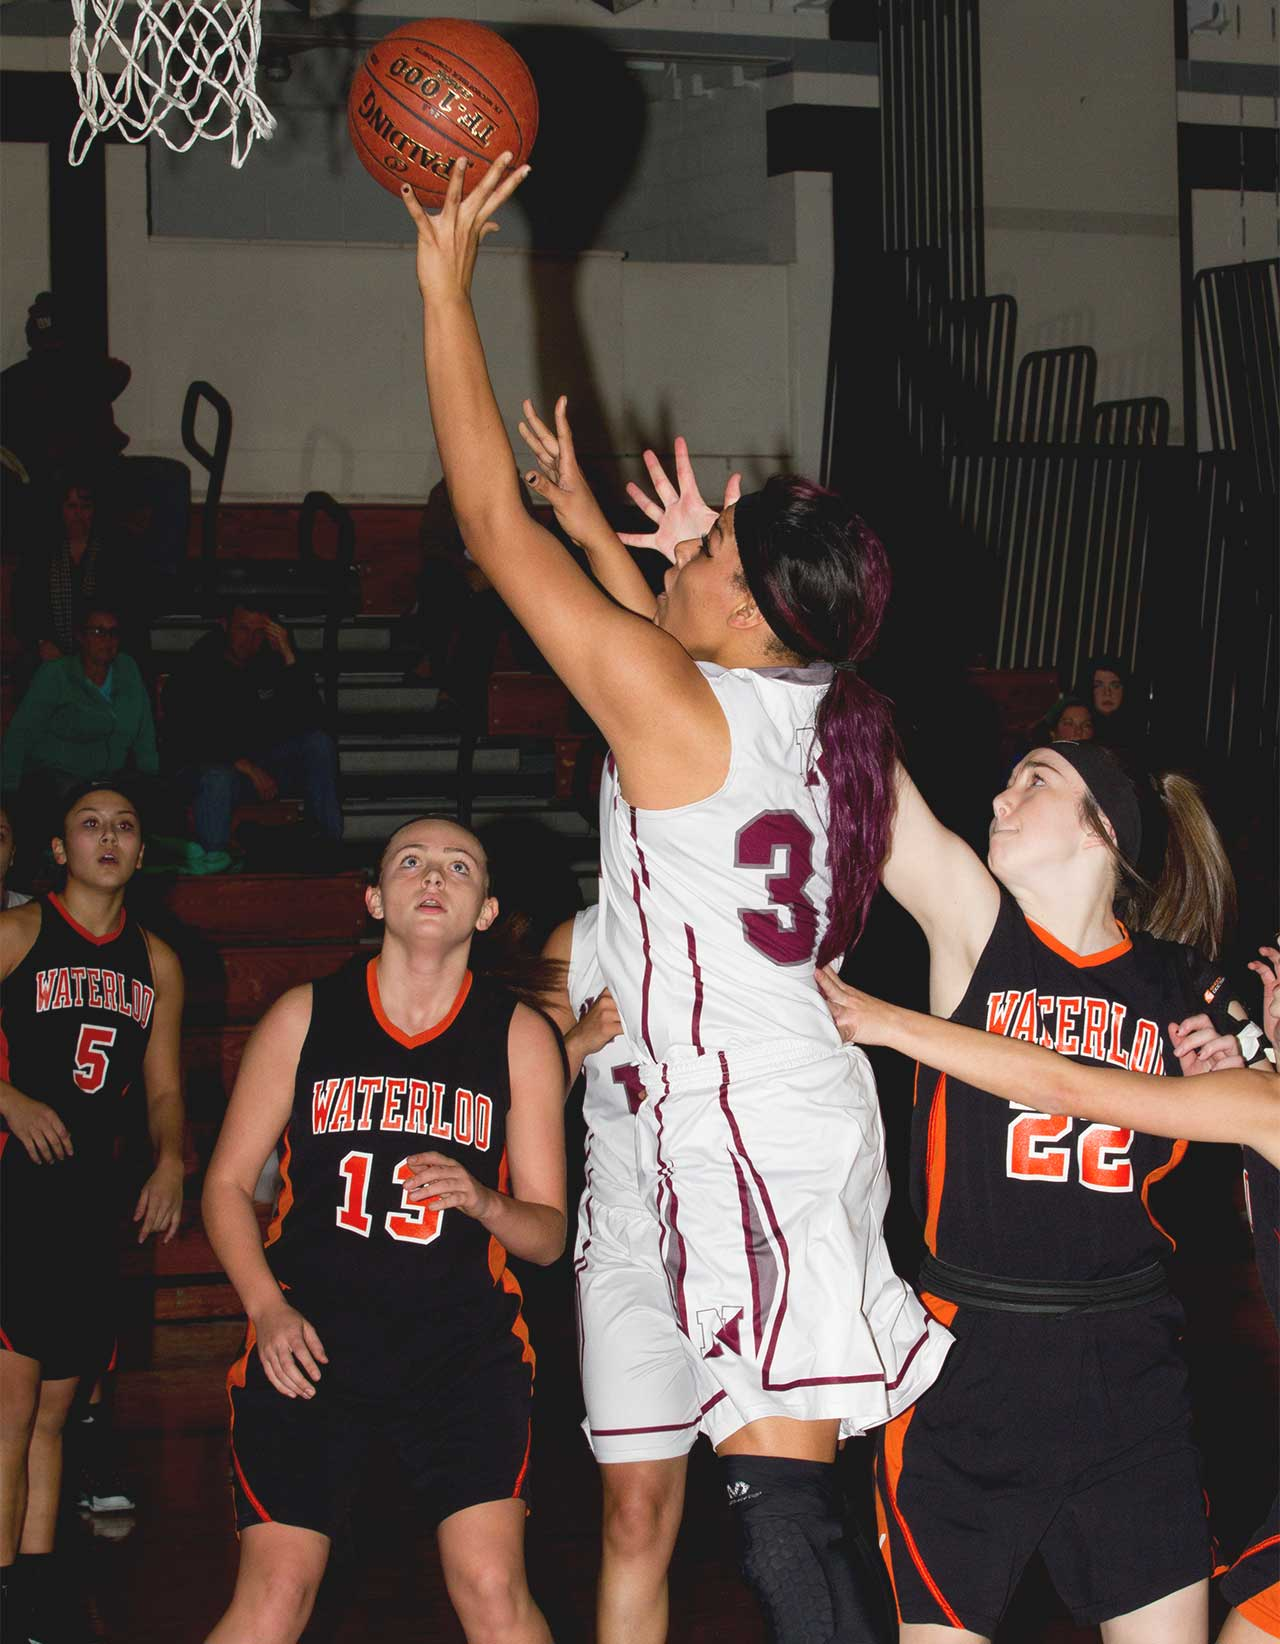 Newark's Ladonia Smith lifts Reds over Waterloo